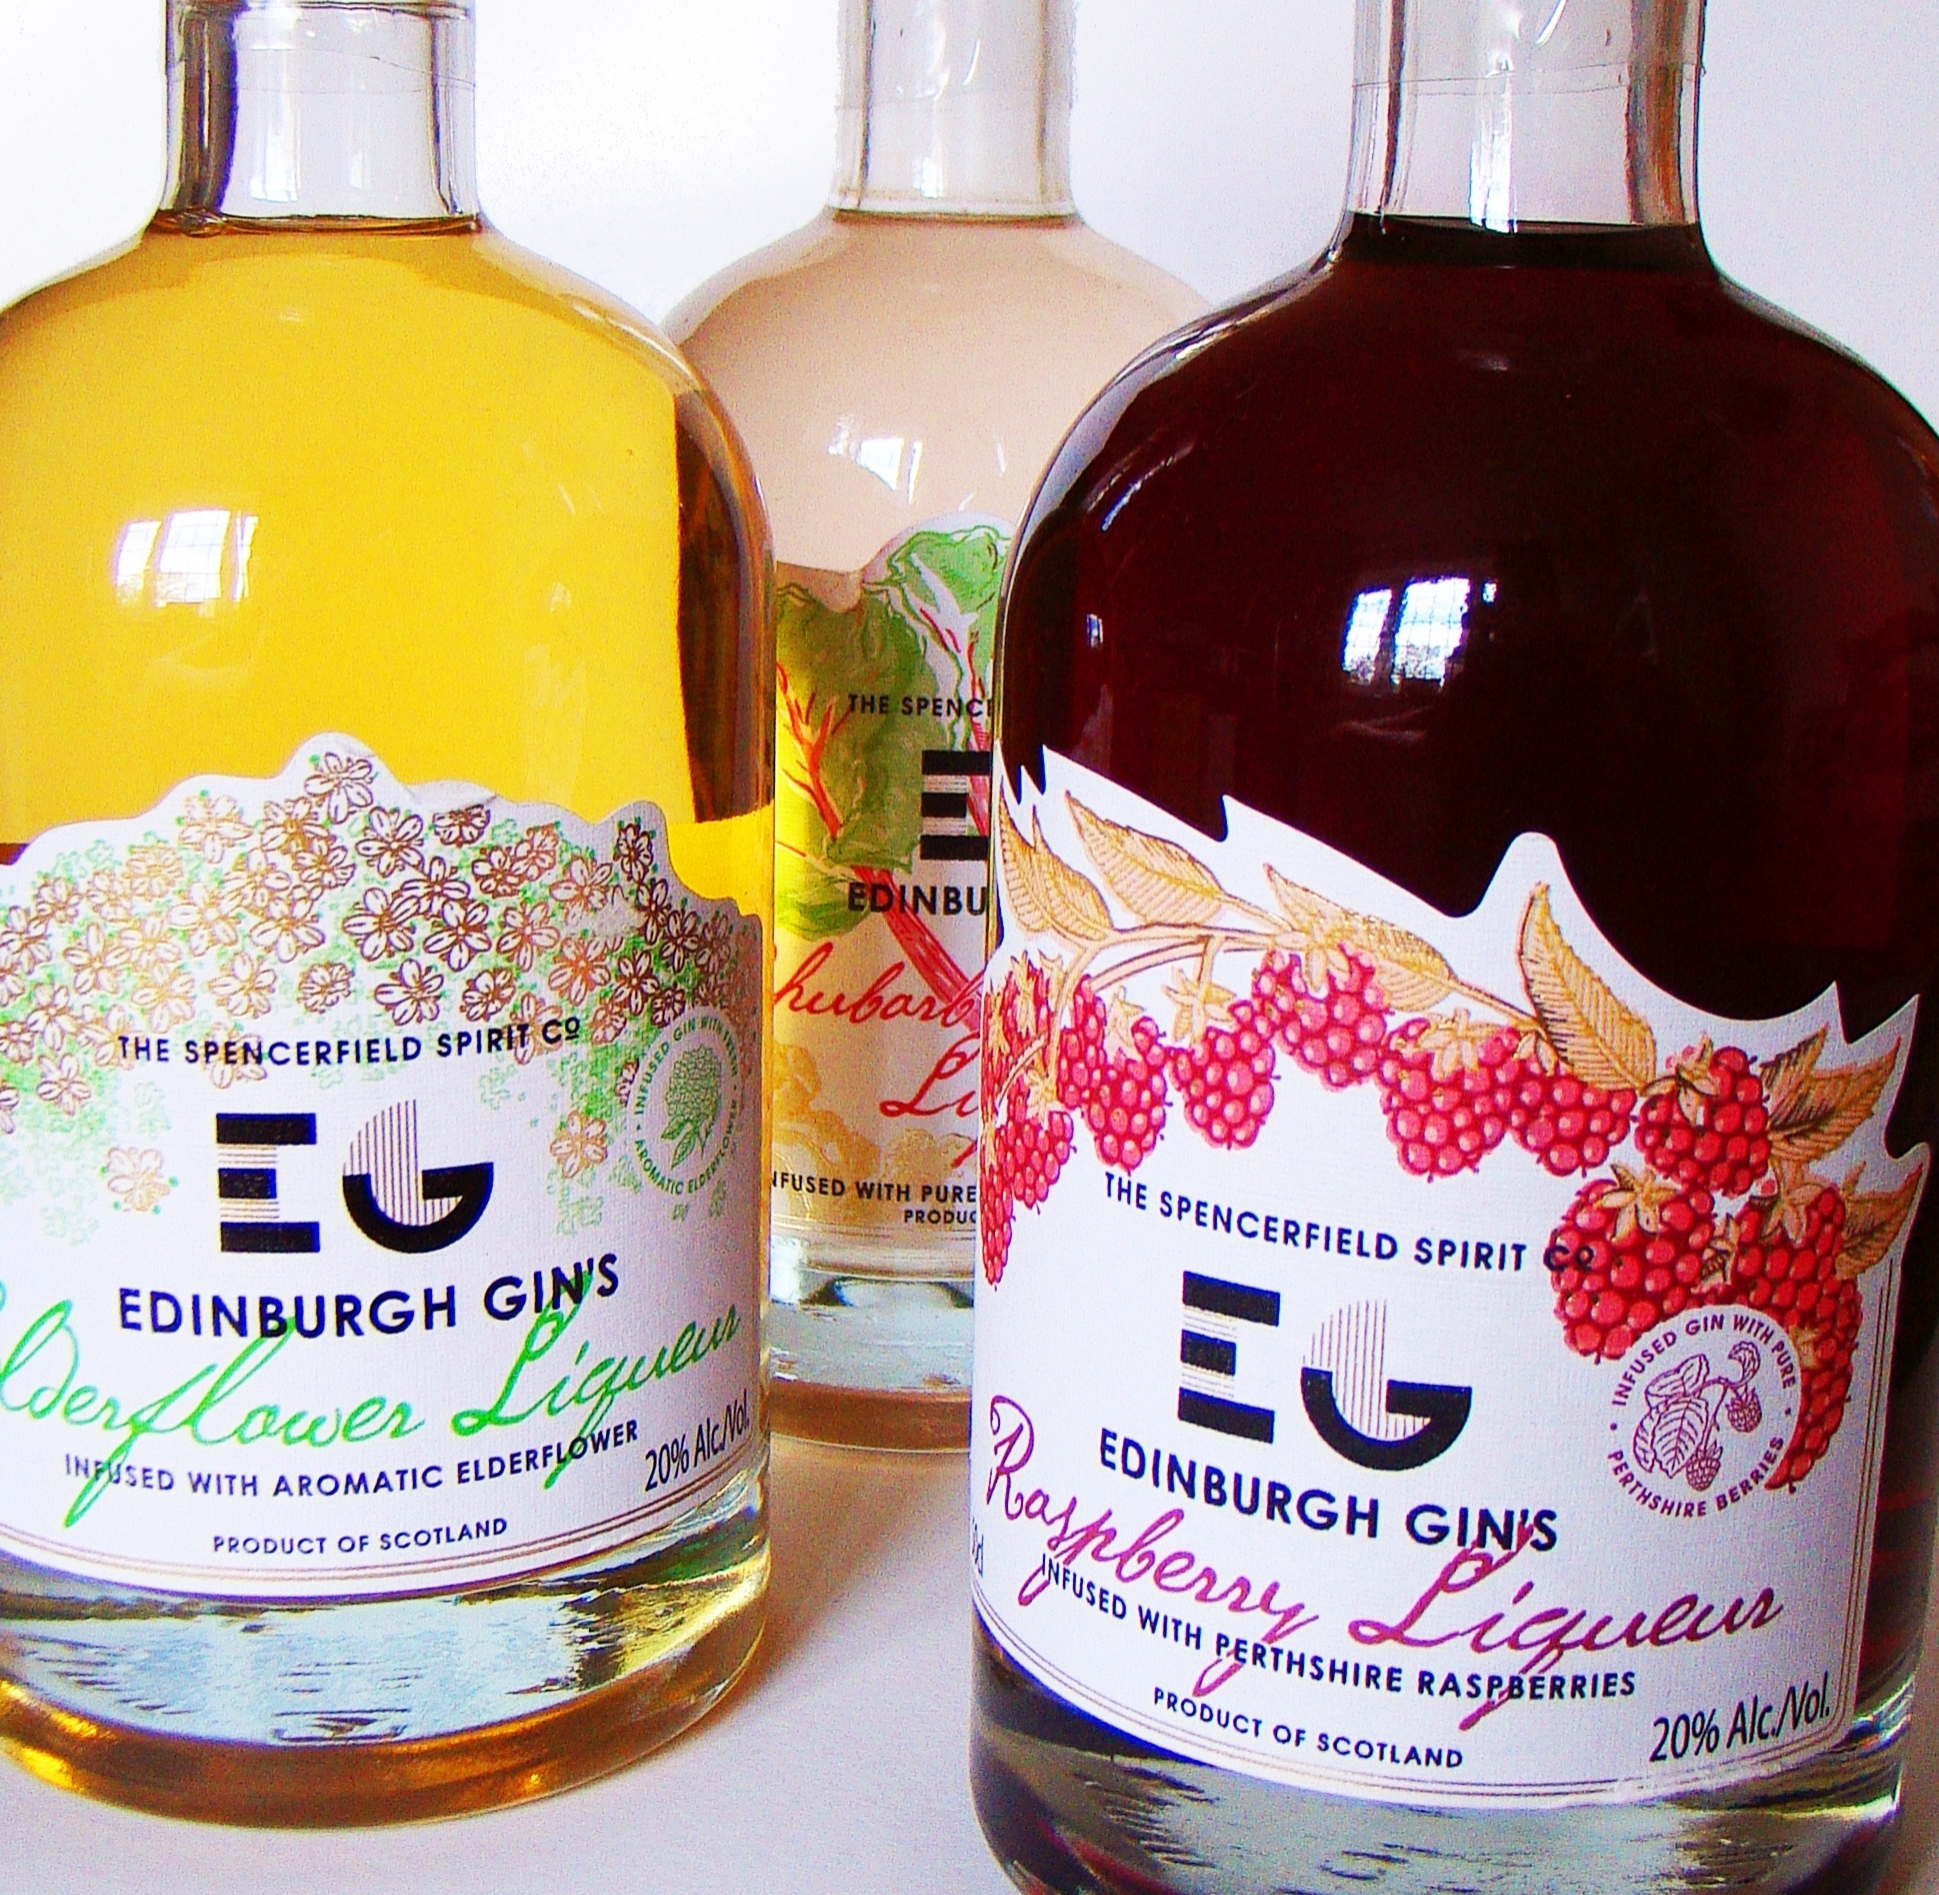 Label commissions from T he Spencerfield Spirit Company  to illustrate their various Edinburgh Gin fruit liqueur labels.